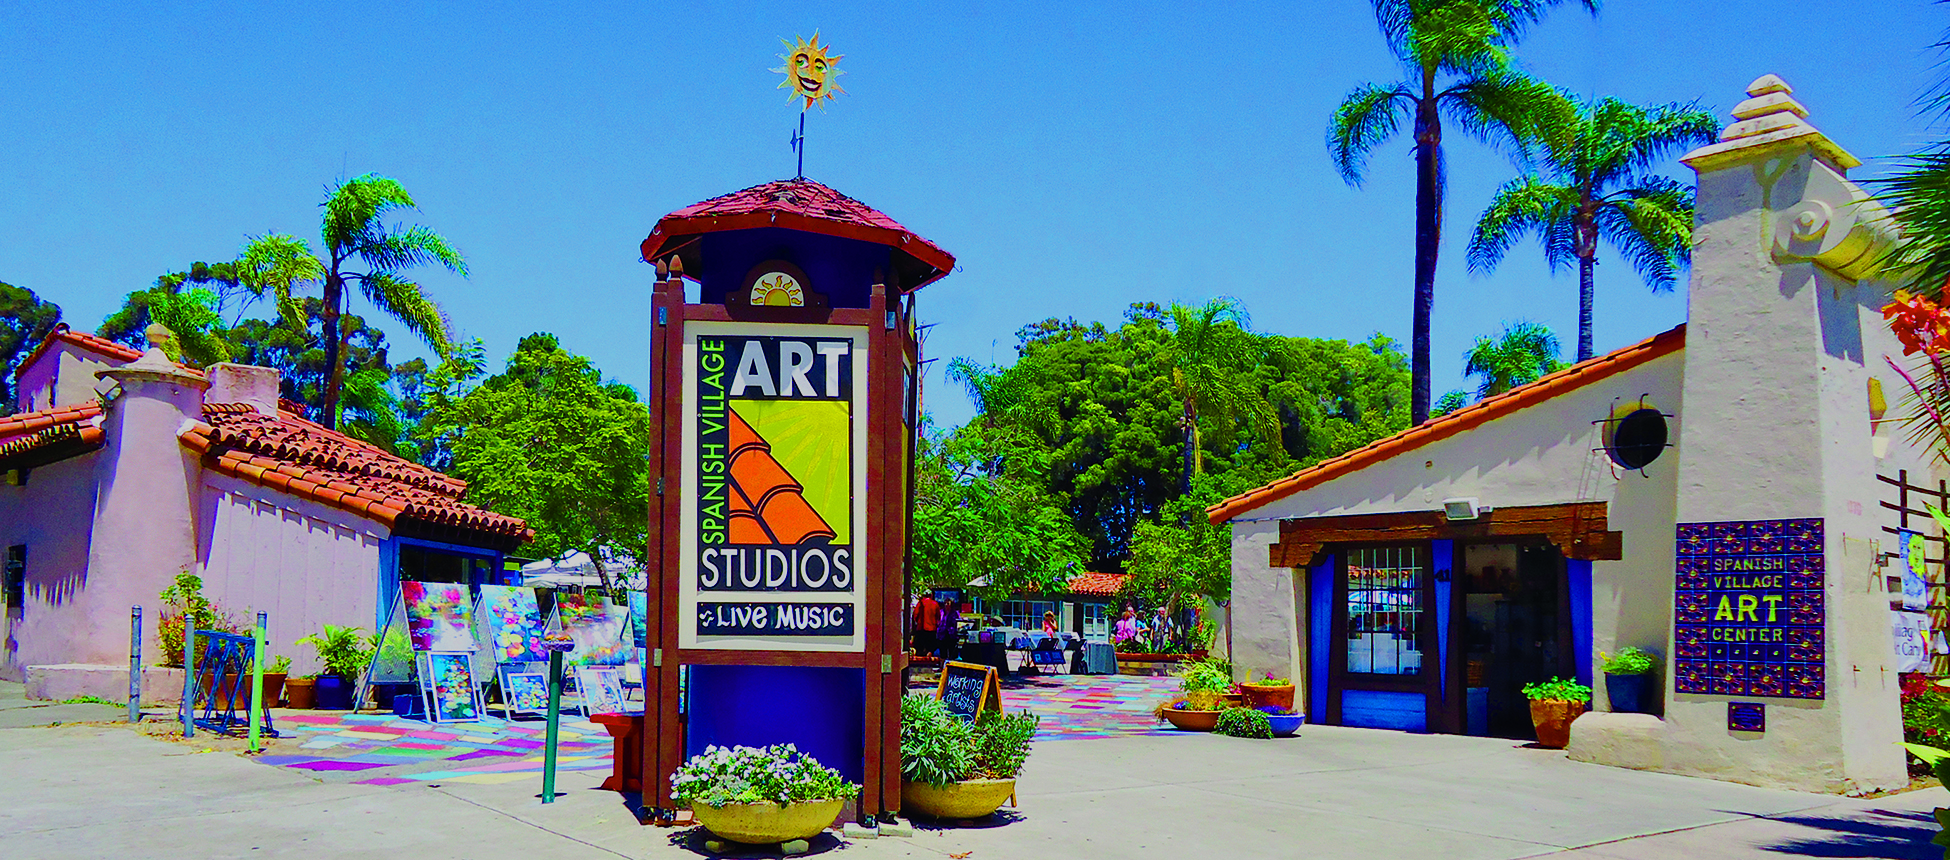 Entrance to the Spanish Village Art Center